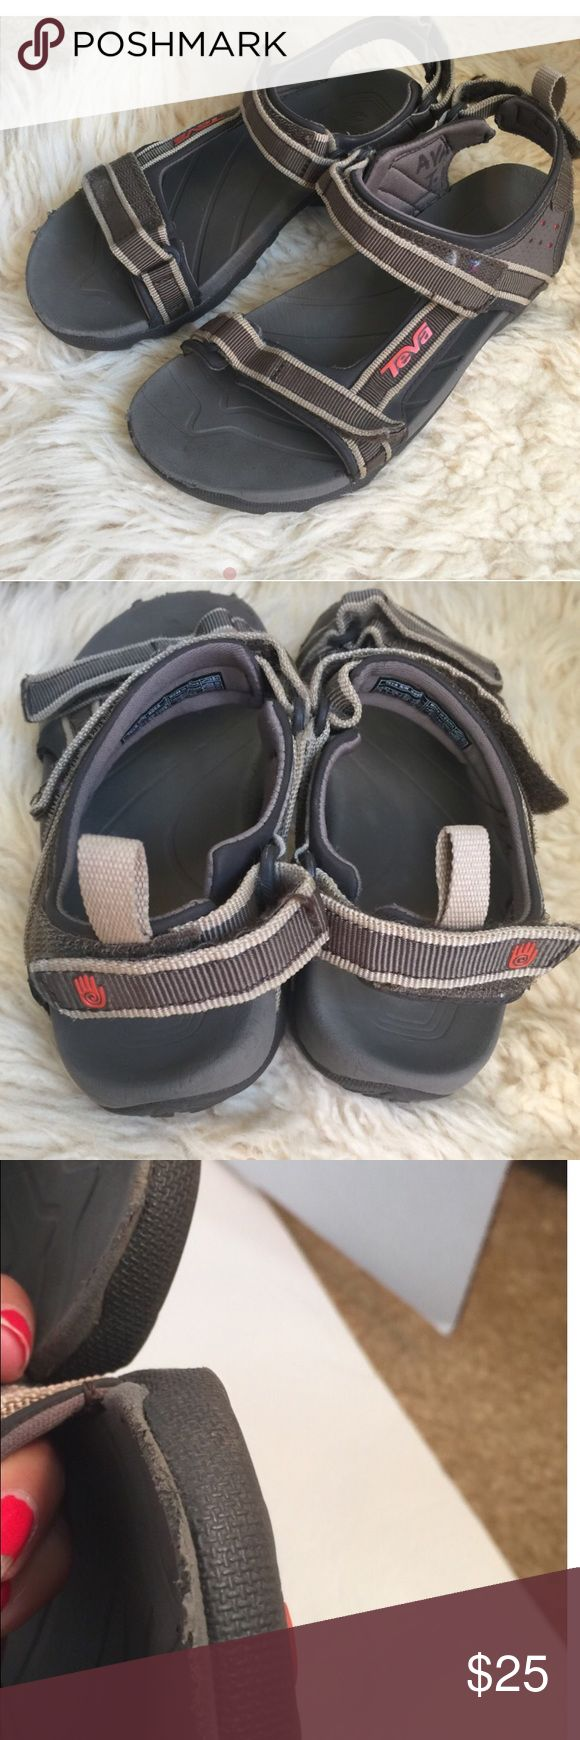 SALE ❤️Teva Kids Sandal an 6095 size 4 Teva Kids Sandal an 6095 size 4 excellent condition with the exception of the FRONT see photo little peel. Expensive quality sandals at a fraction of the price. Teva Shoes Sandals & Flip Flops